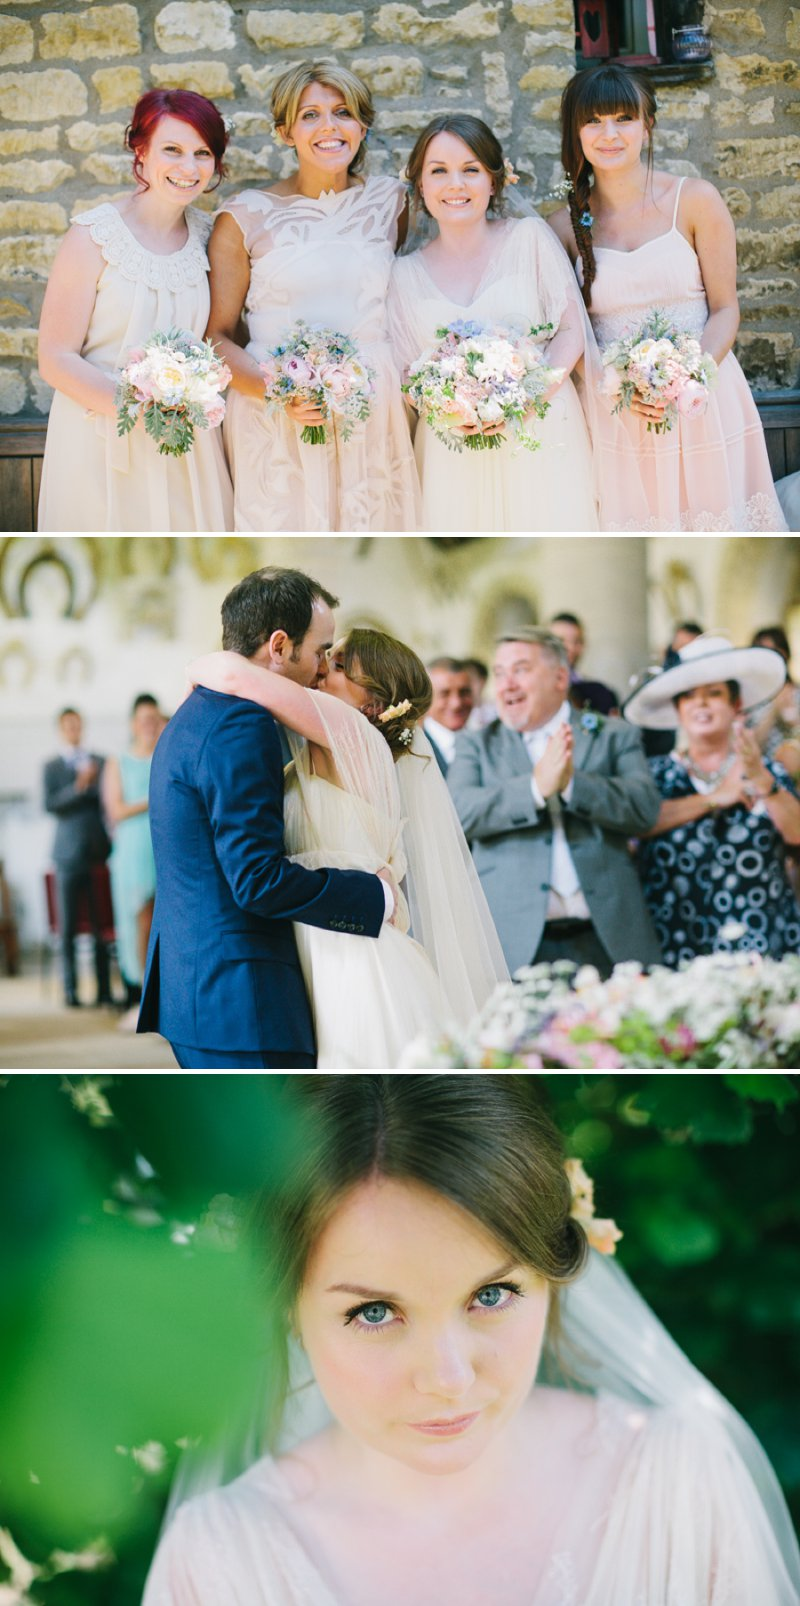 Marquee Wedding With A Pastel Colour Scheme At The Fox And Hounds Inn Rutland With Bride In Bespoke Kula Tsurdiu Gown And Groom In Reiss Suit 1 The Perfect Fit...Tabitha & Chris Part One.